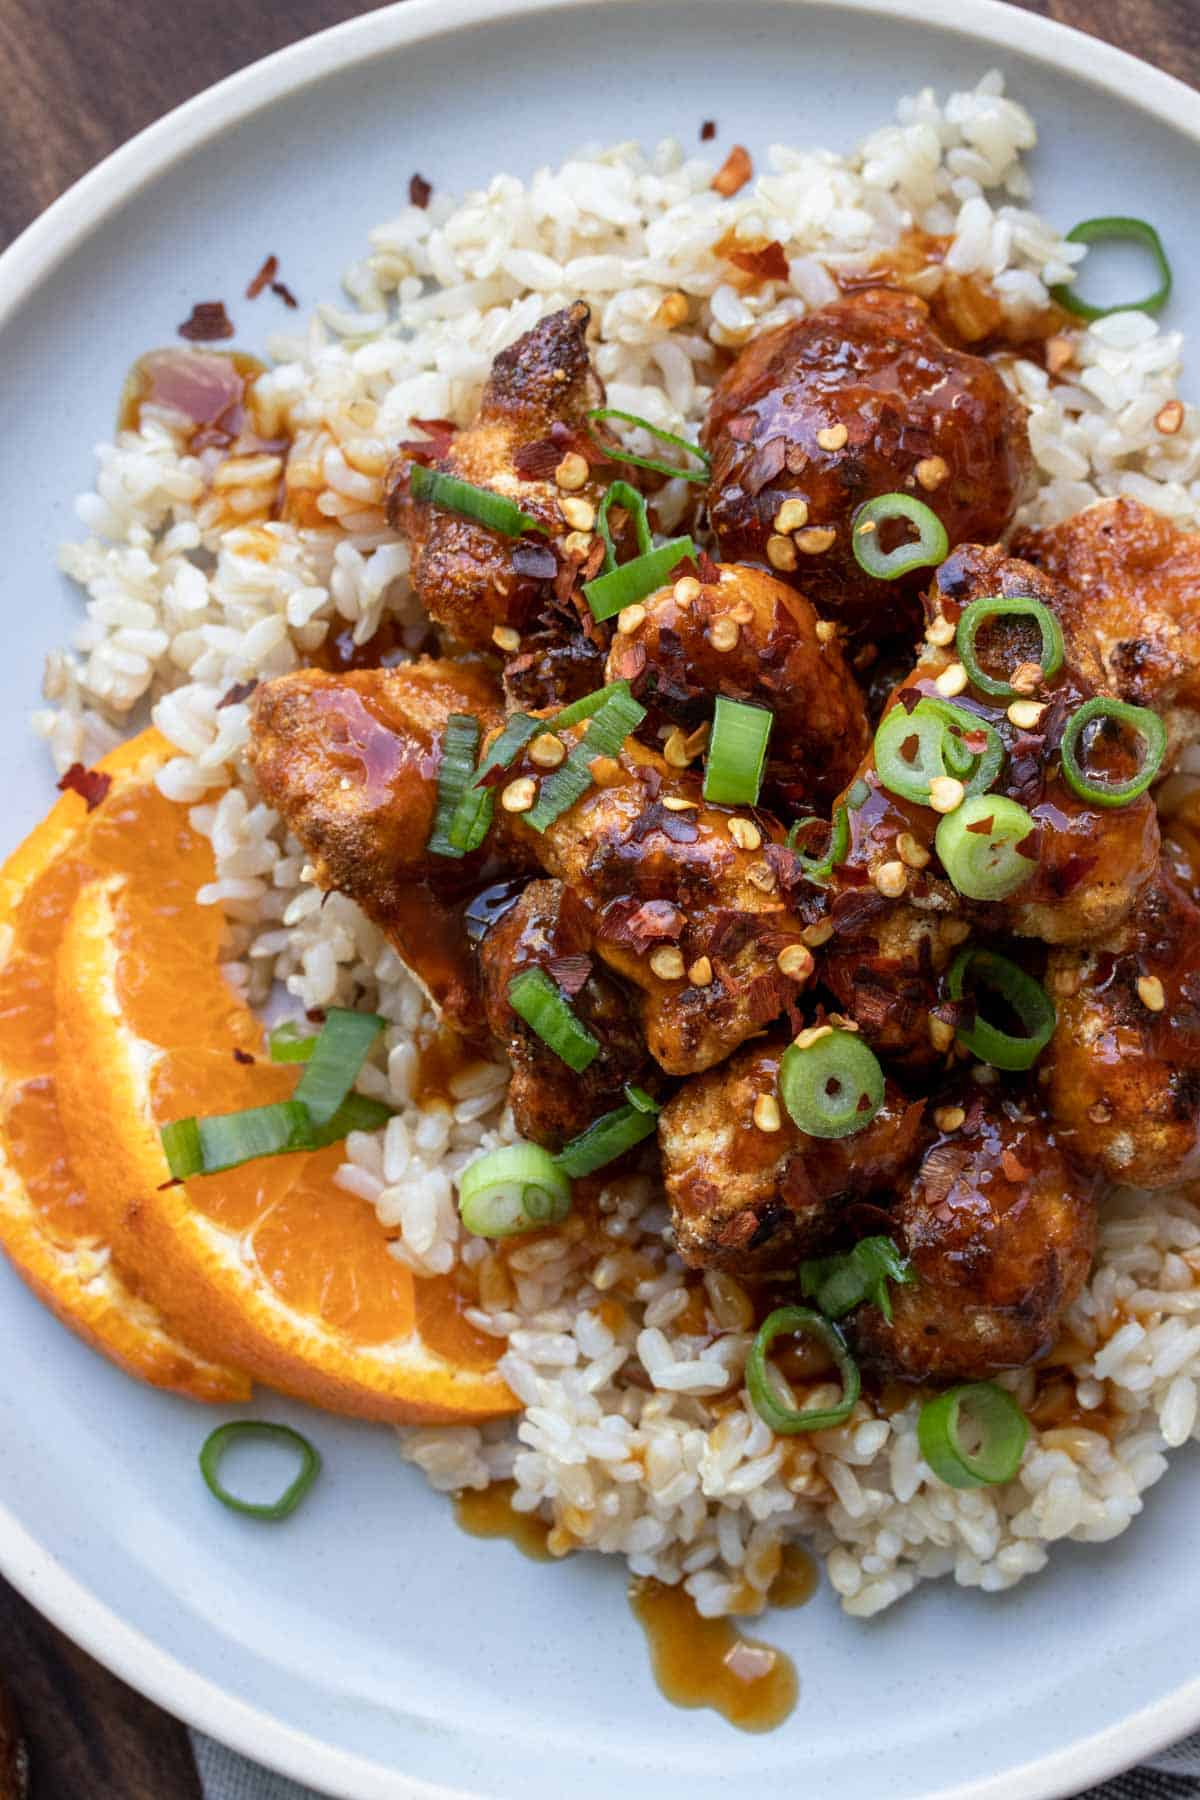 Close up of crispy cauliflower tossed in Chinese orange sauce over rice